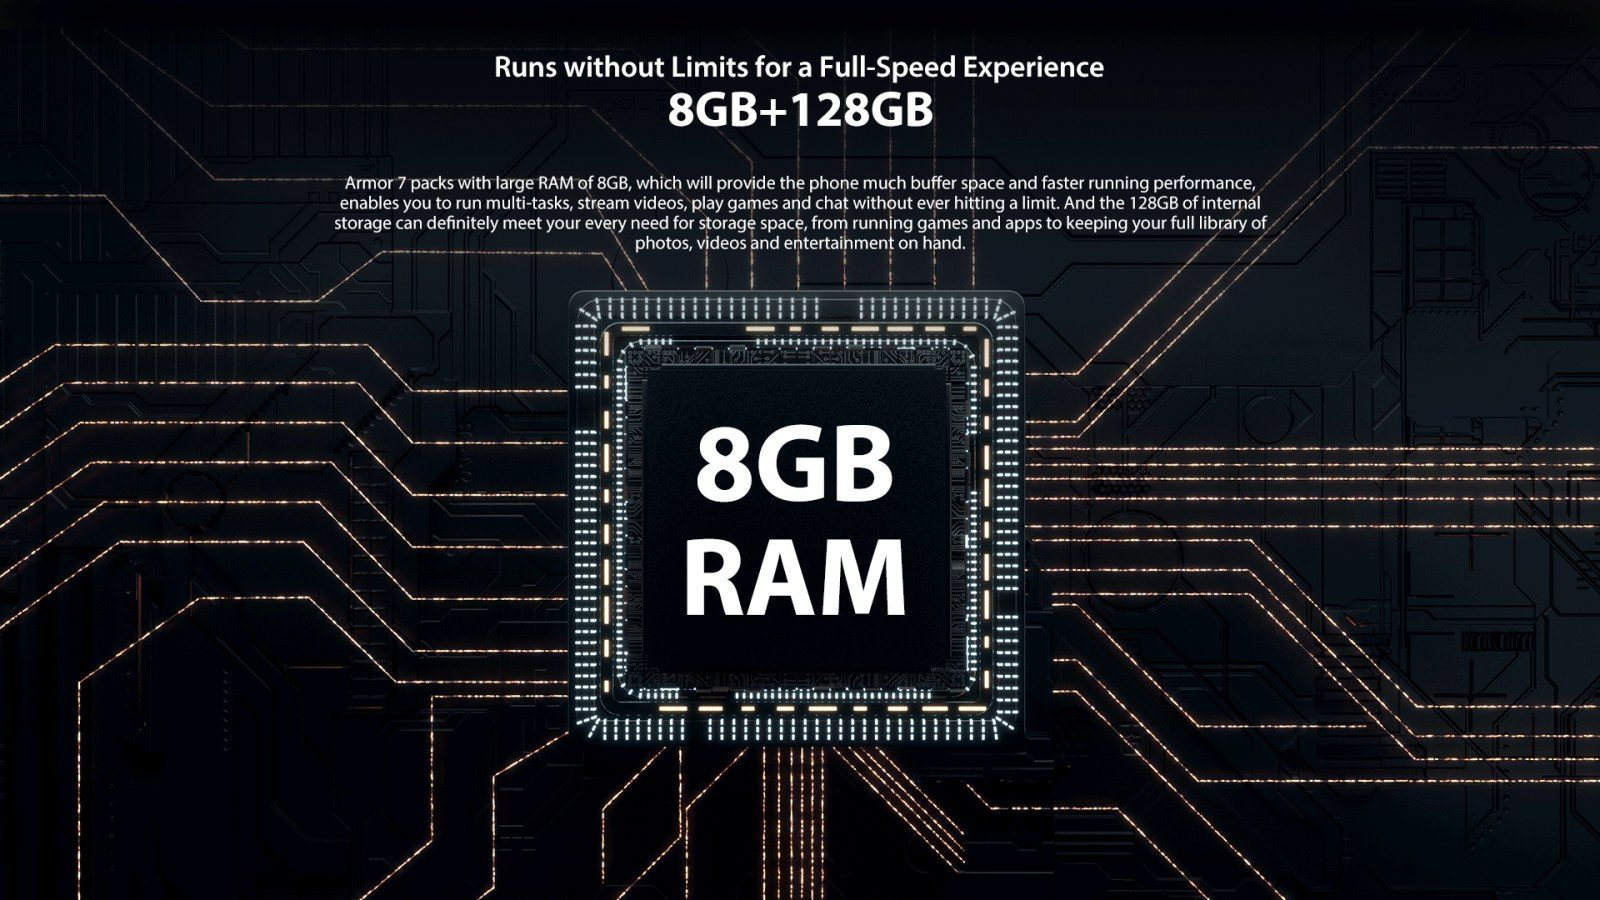 8 GB fast RAM plus 128GB flash ROM